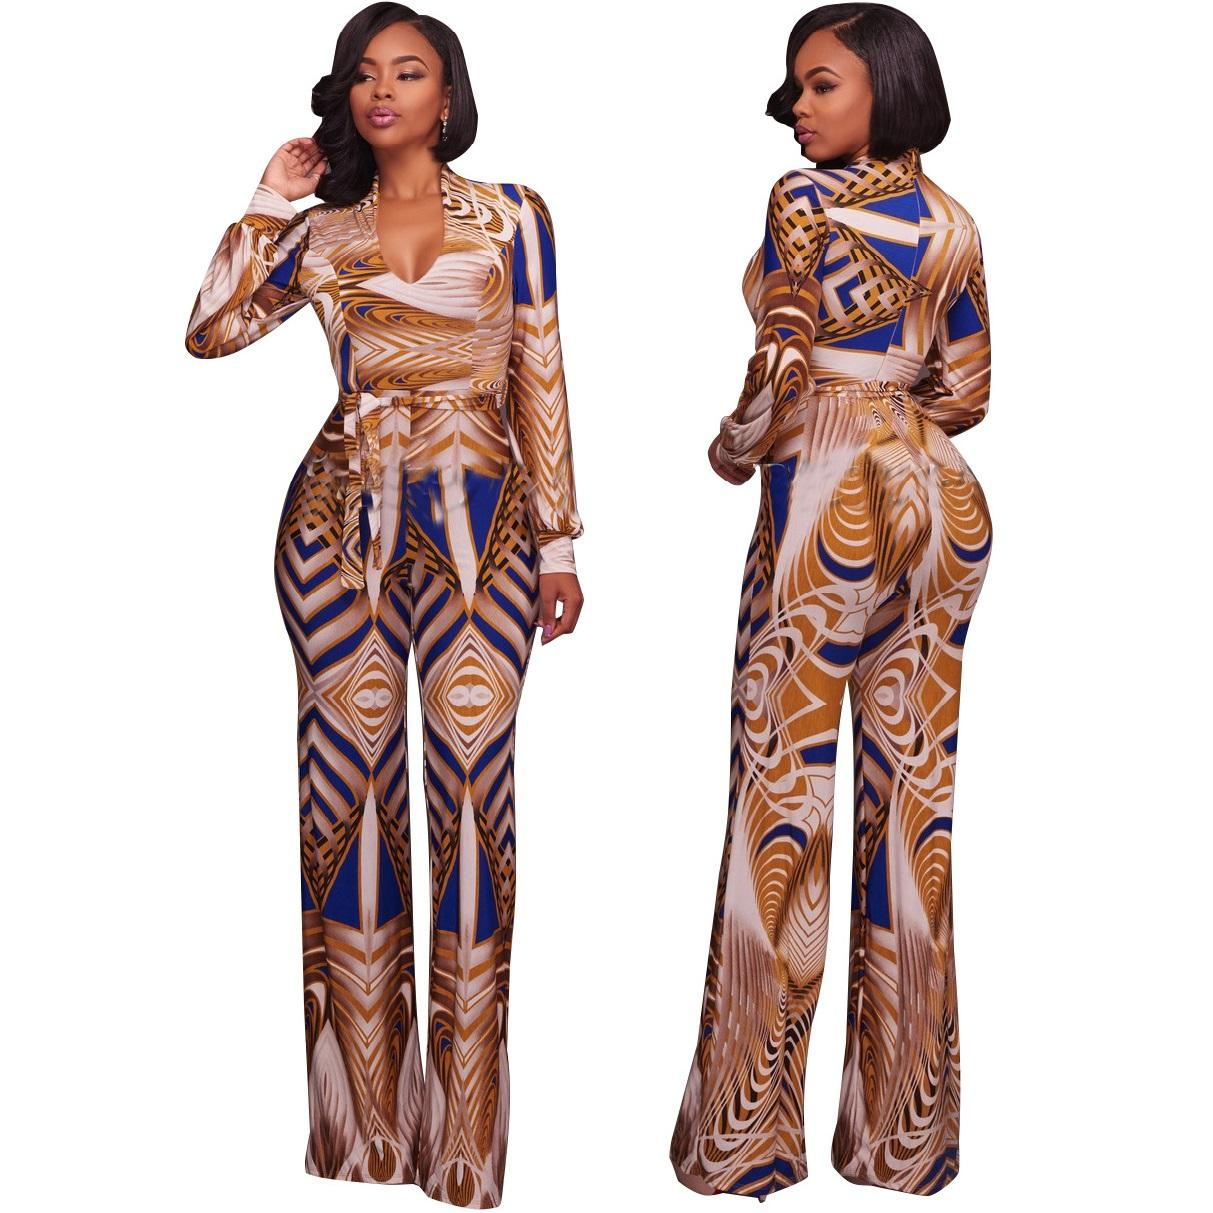 3787ad0d38 2019 Womens Pattern Print Fashion Long Maxi Jumpsuits Rompers Plus Size  Sexy Bandage Full Length One Piece Pants For Female From Wodedipan1977